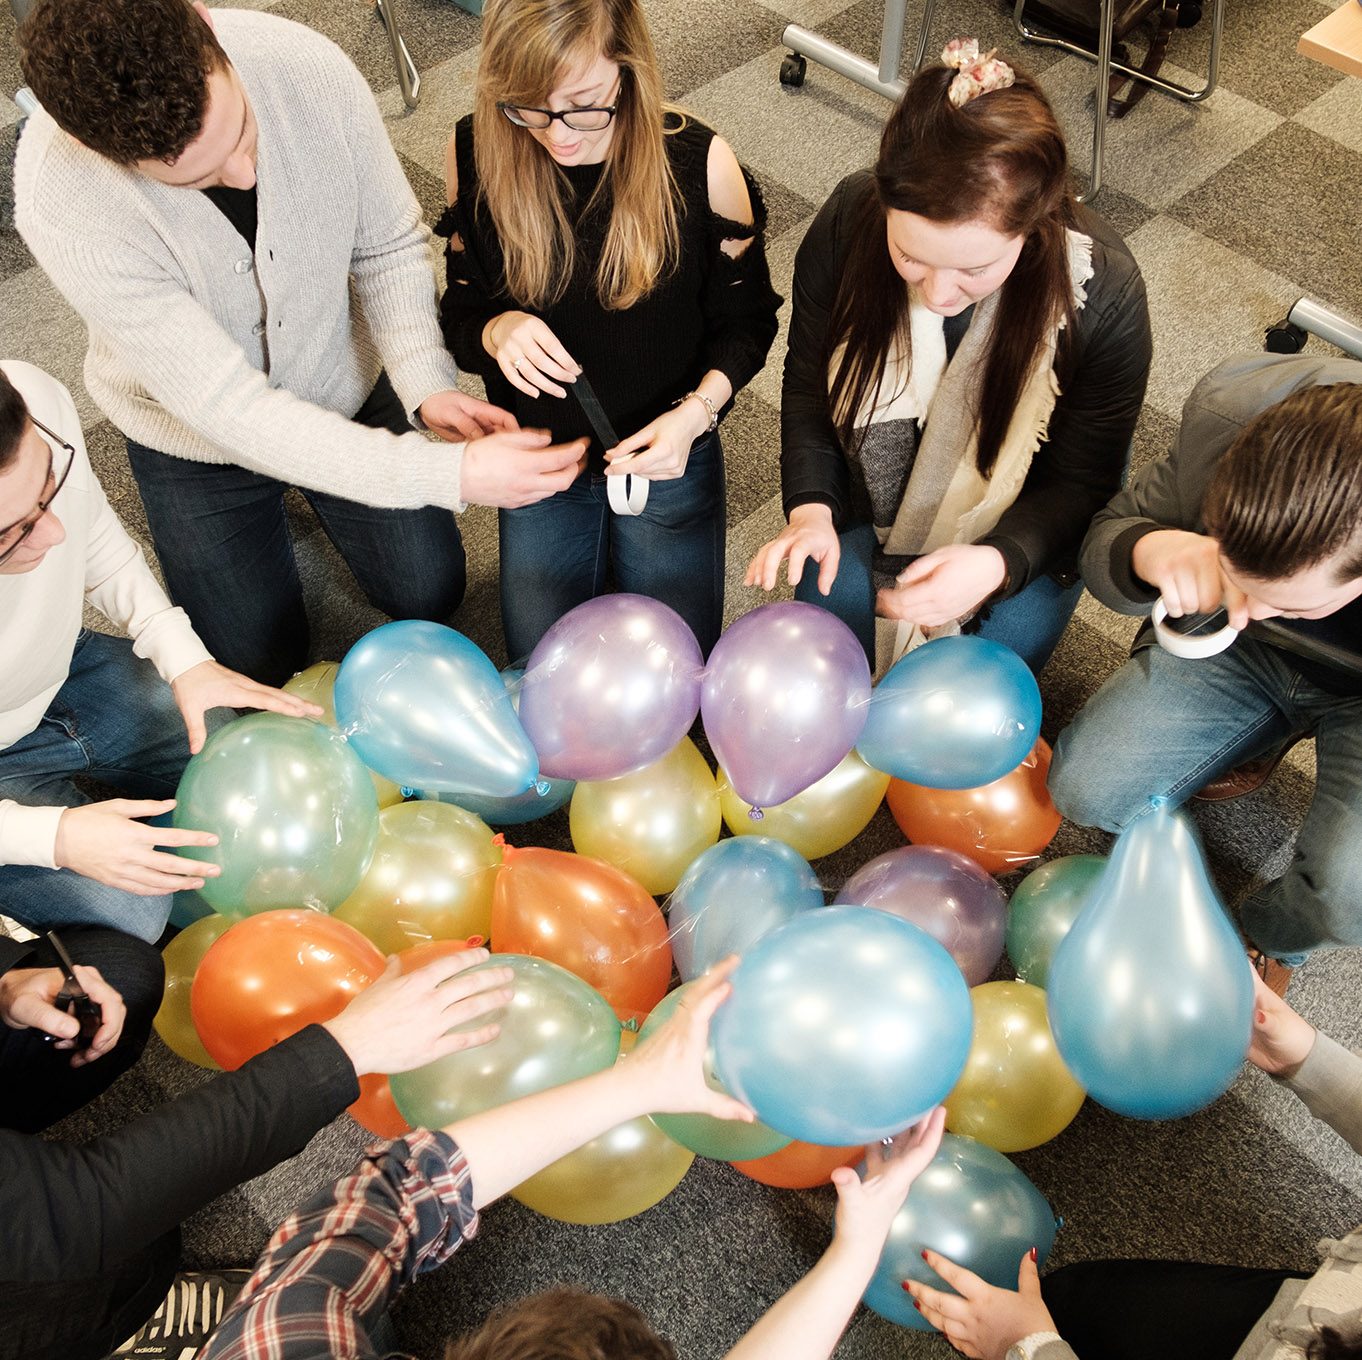 A group of students assemble balloons as part of a classroom task